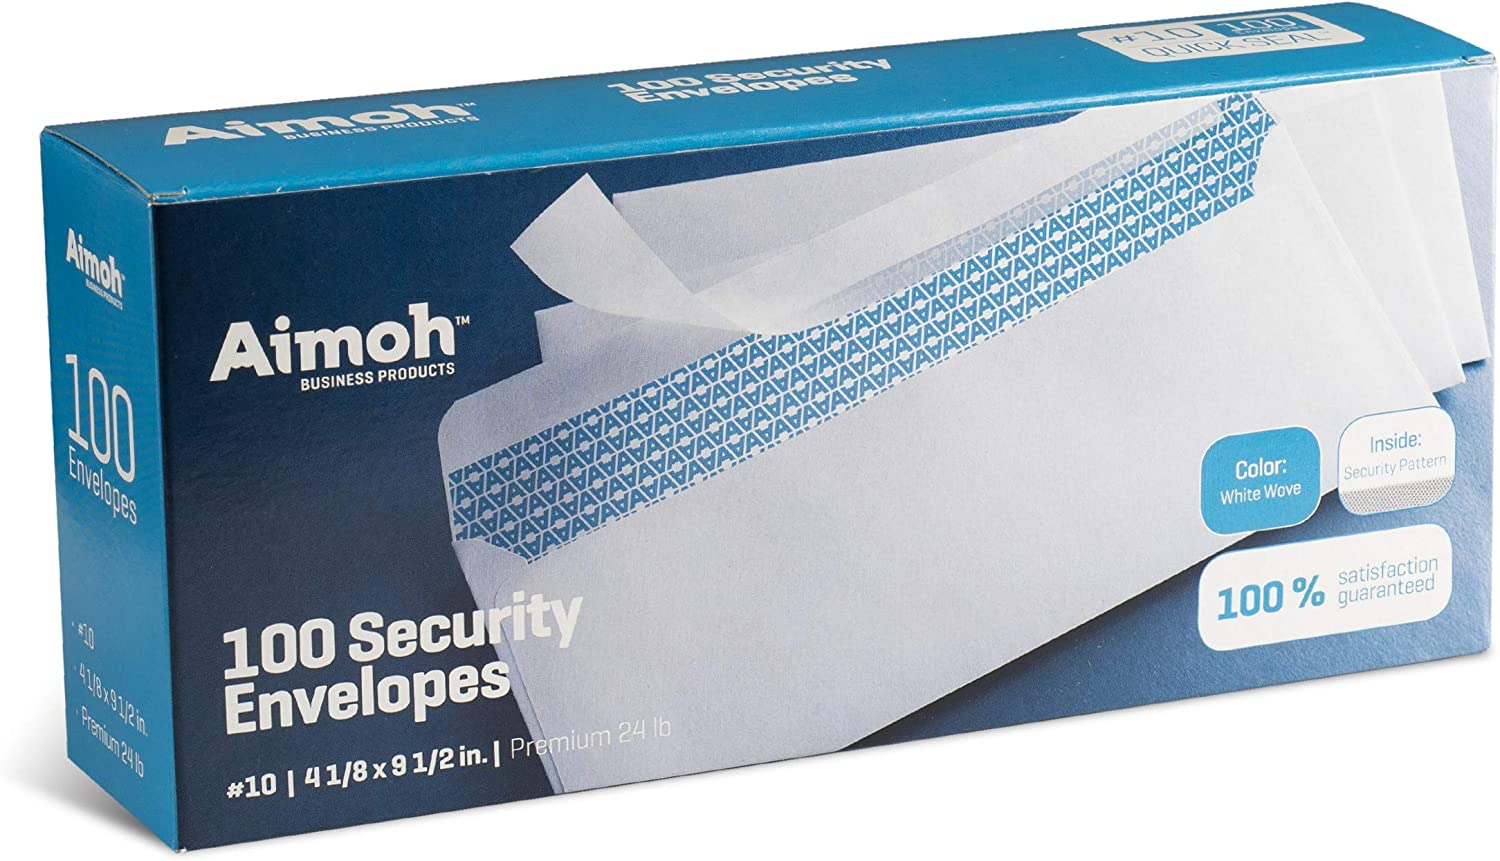 #10 Security Tinted Self-Seal Envelopes - No Window, Size 4-1/8 X 9-1/2 Inches - White - 24 LB - 100 Count (34100) 81U5FugRCsL